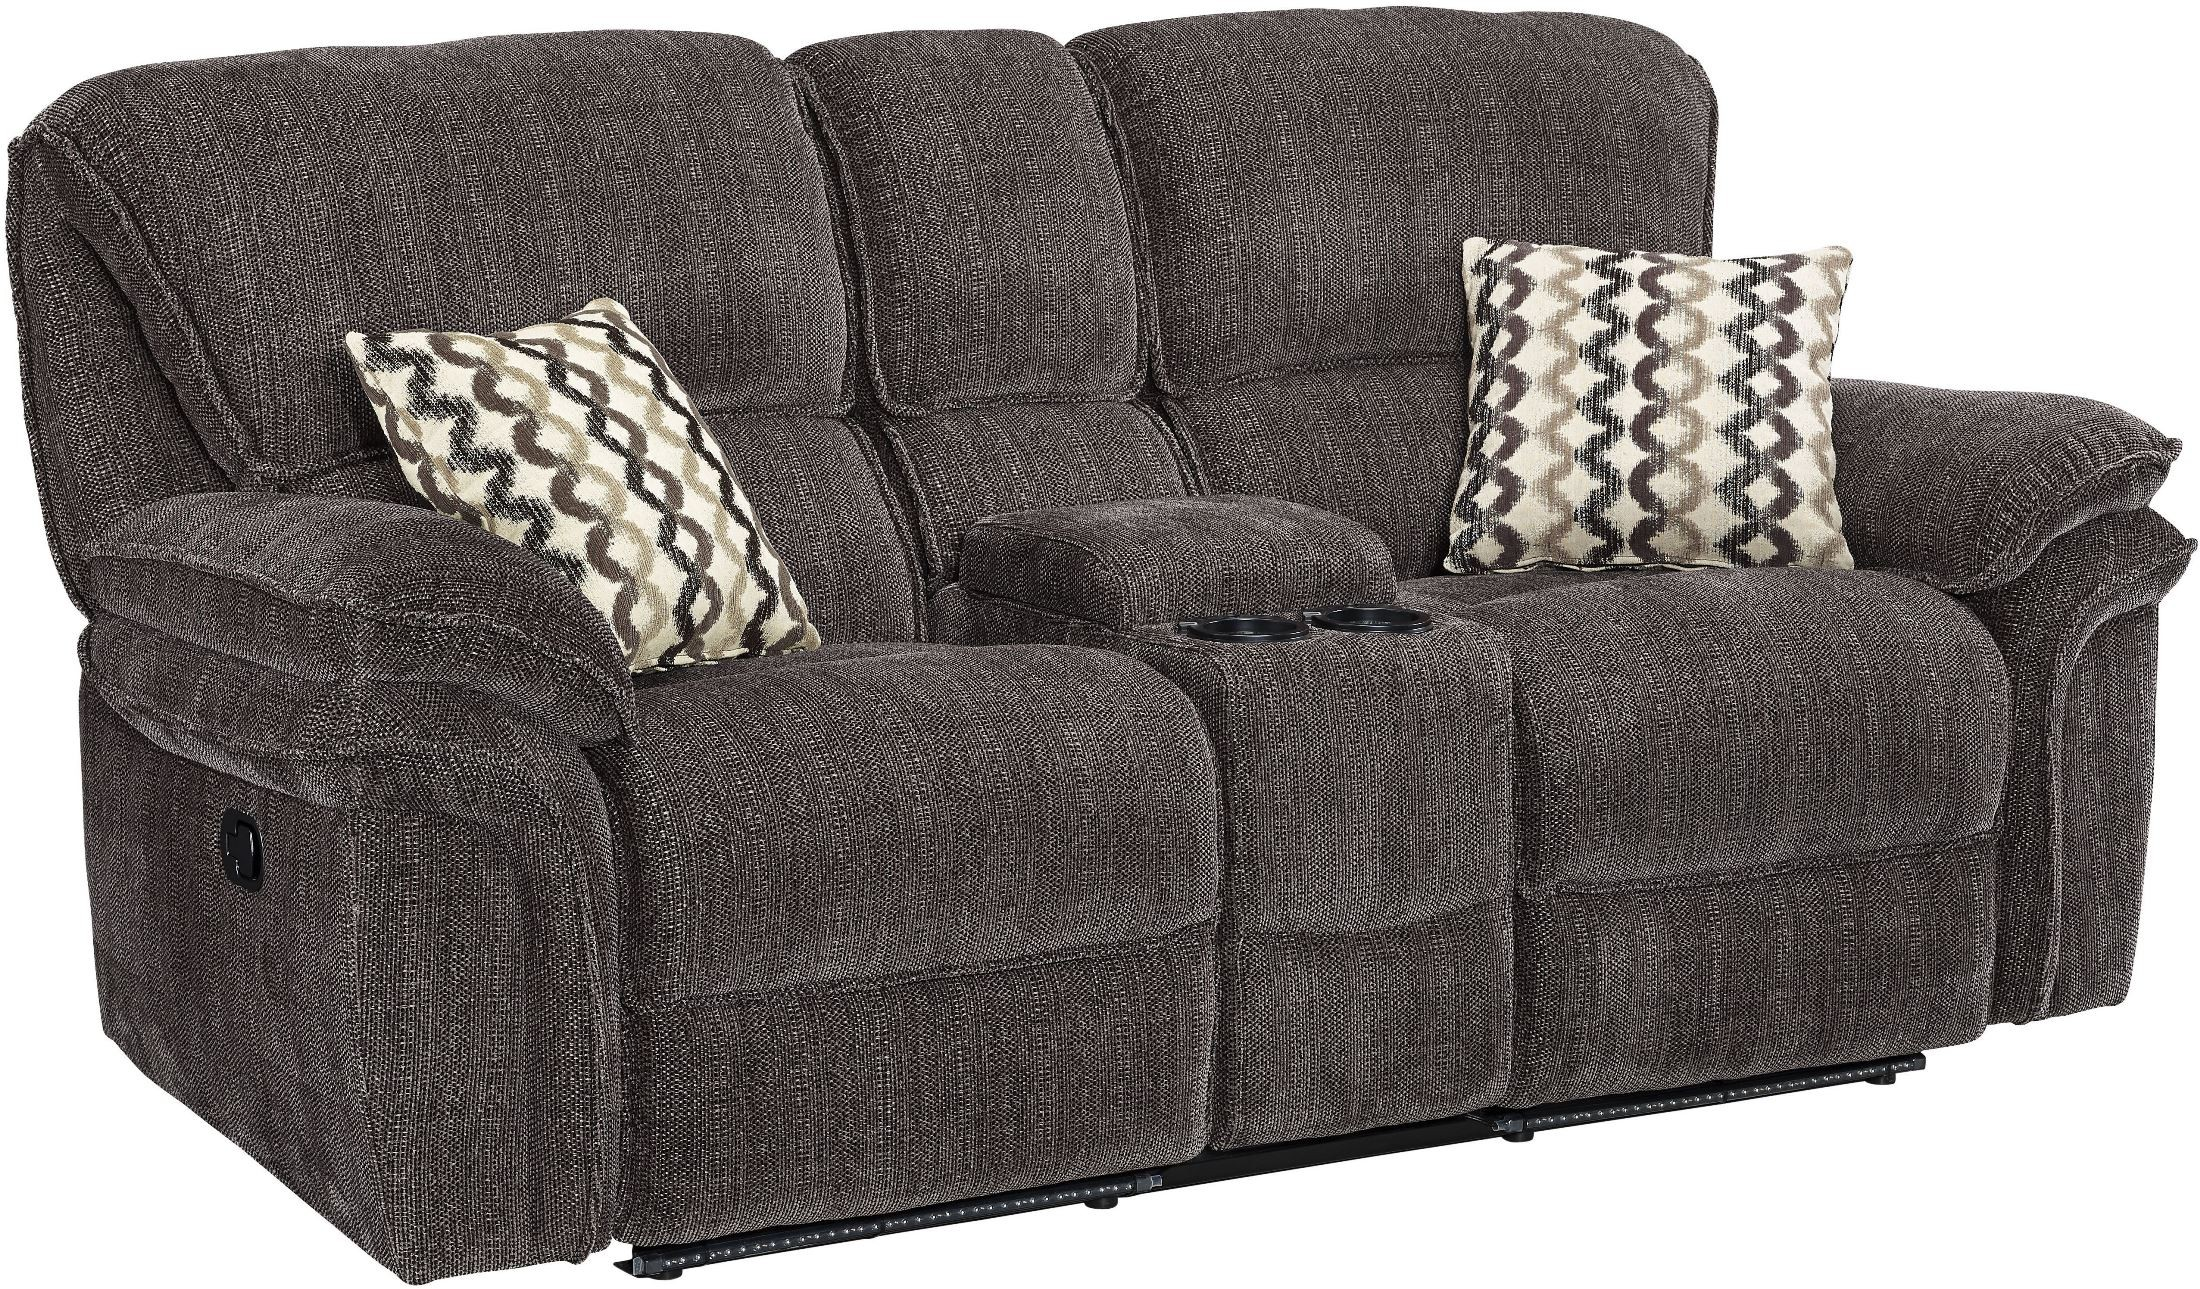 Lightning Zachary Shadow Dual Reclining Console Loveseat From New Classic Coleman Furniture